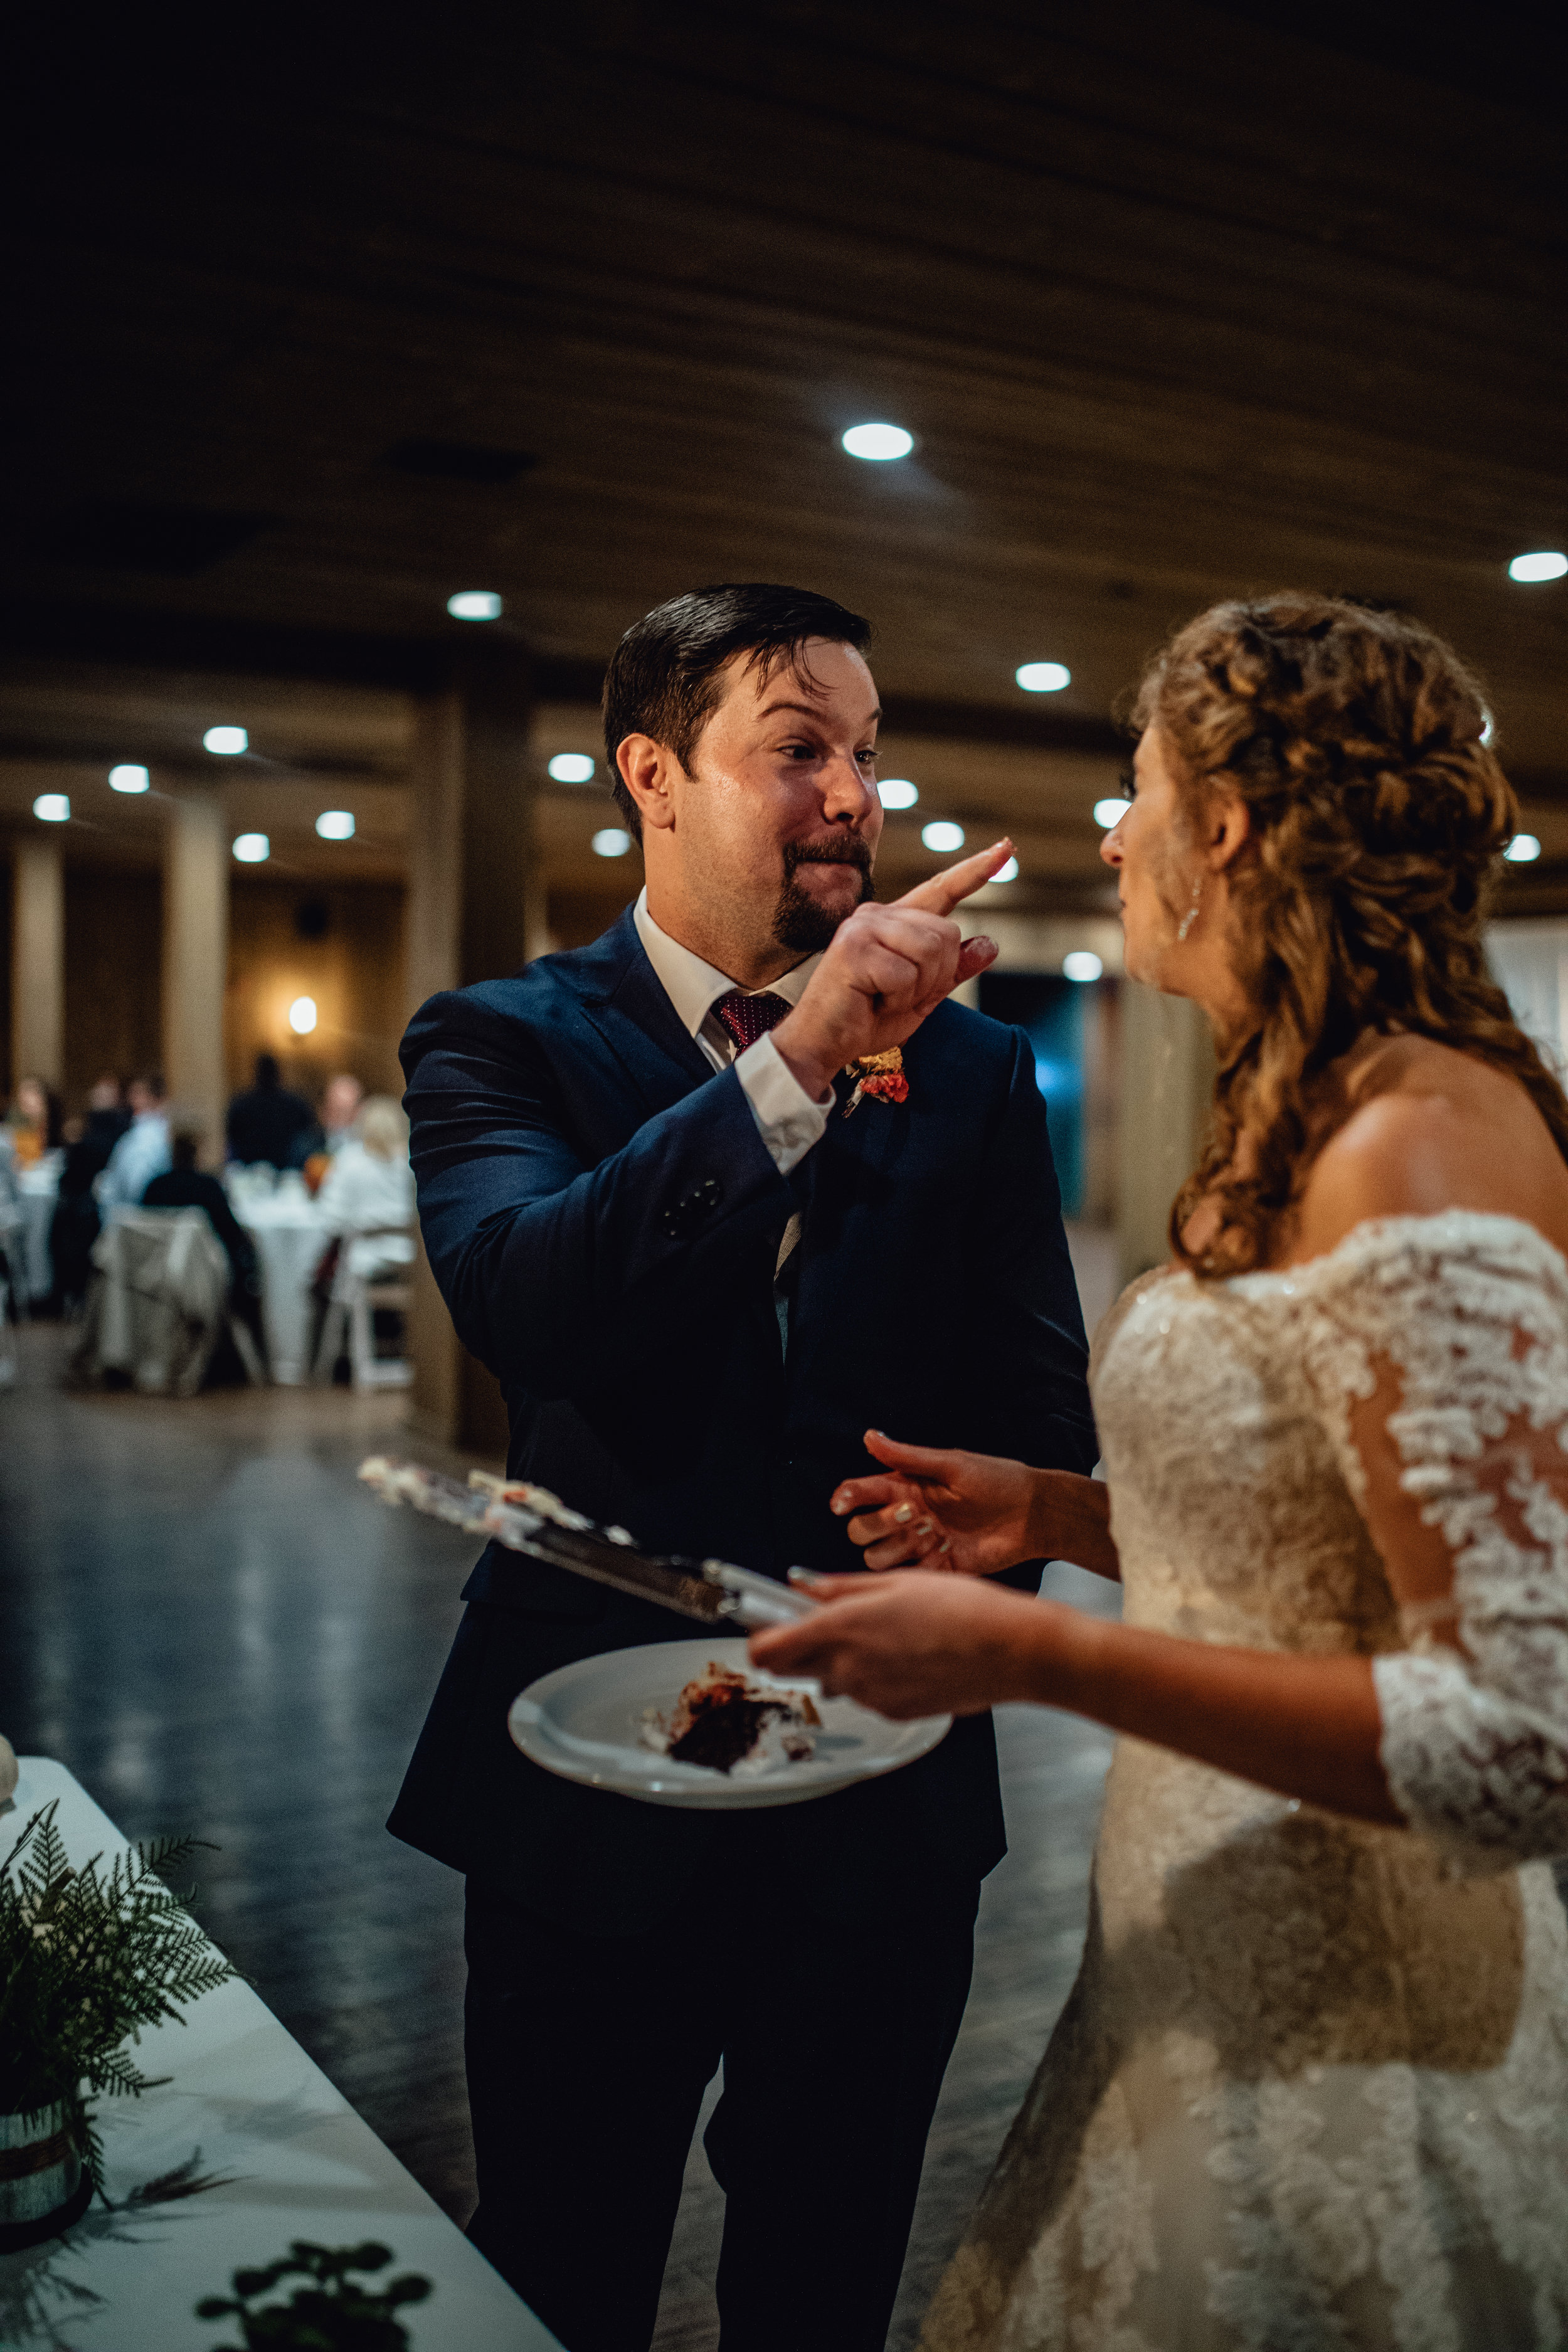 bride-and-groom-cutting-cake-at-rustic-manor-1848.jpg